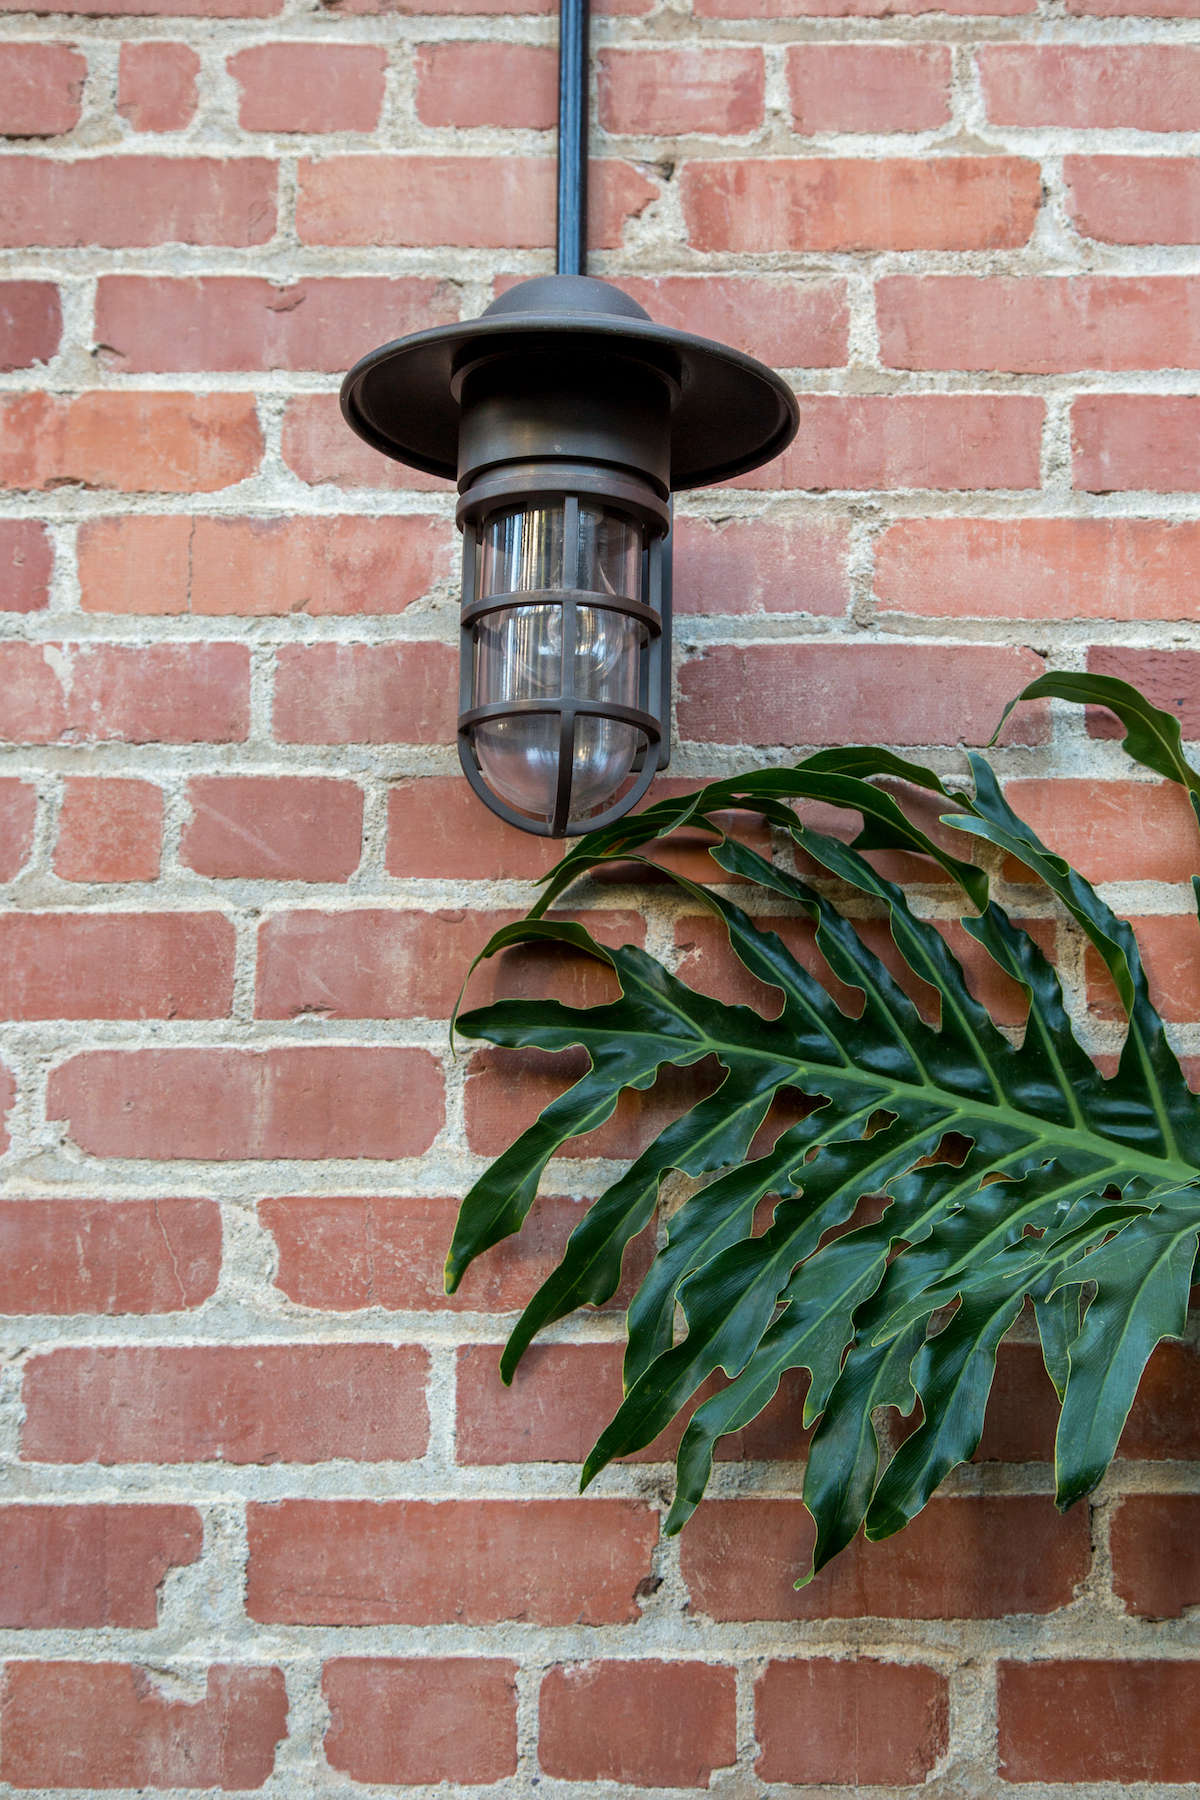 Nautical outdoor lantern with tree frond on brick wall